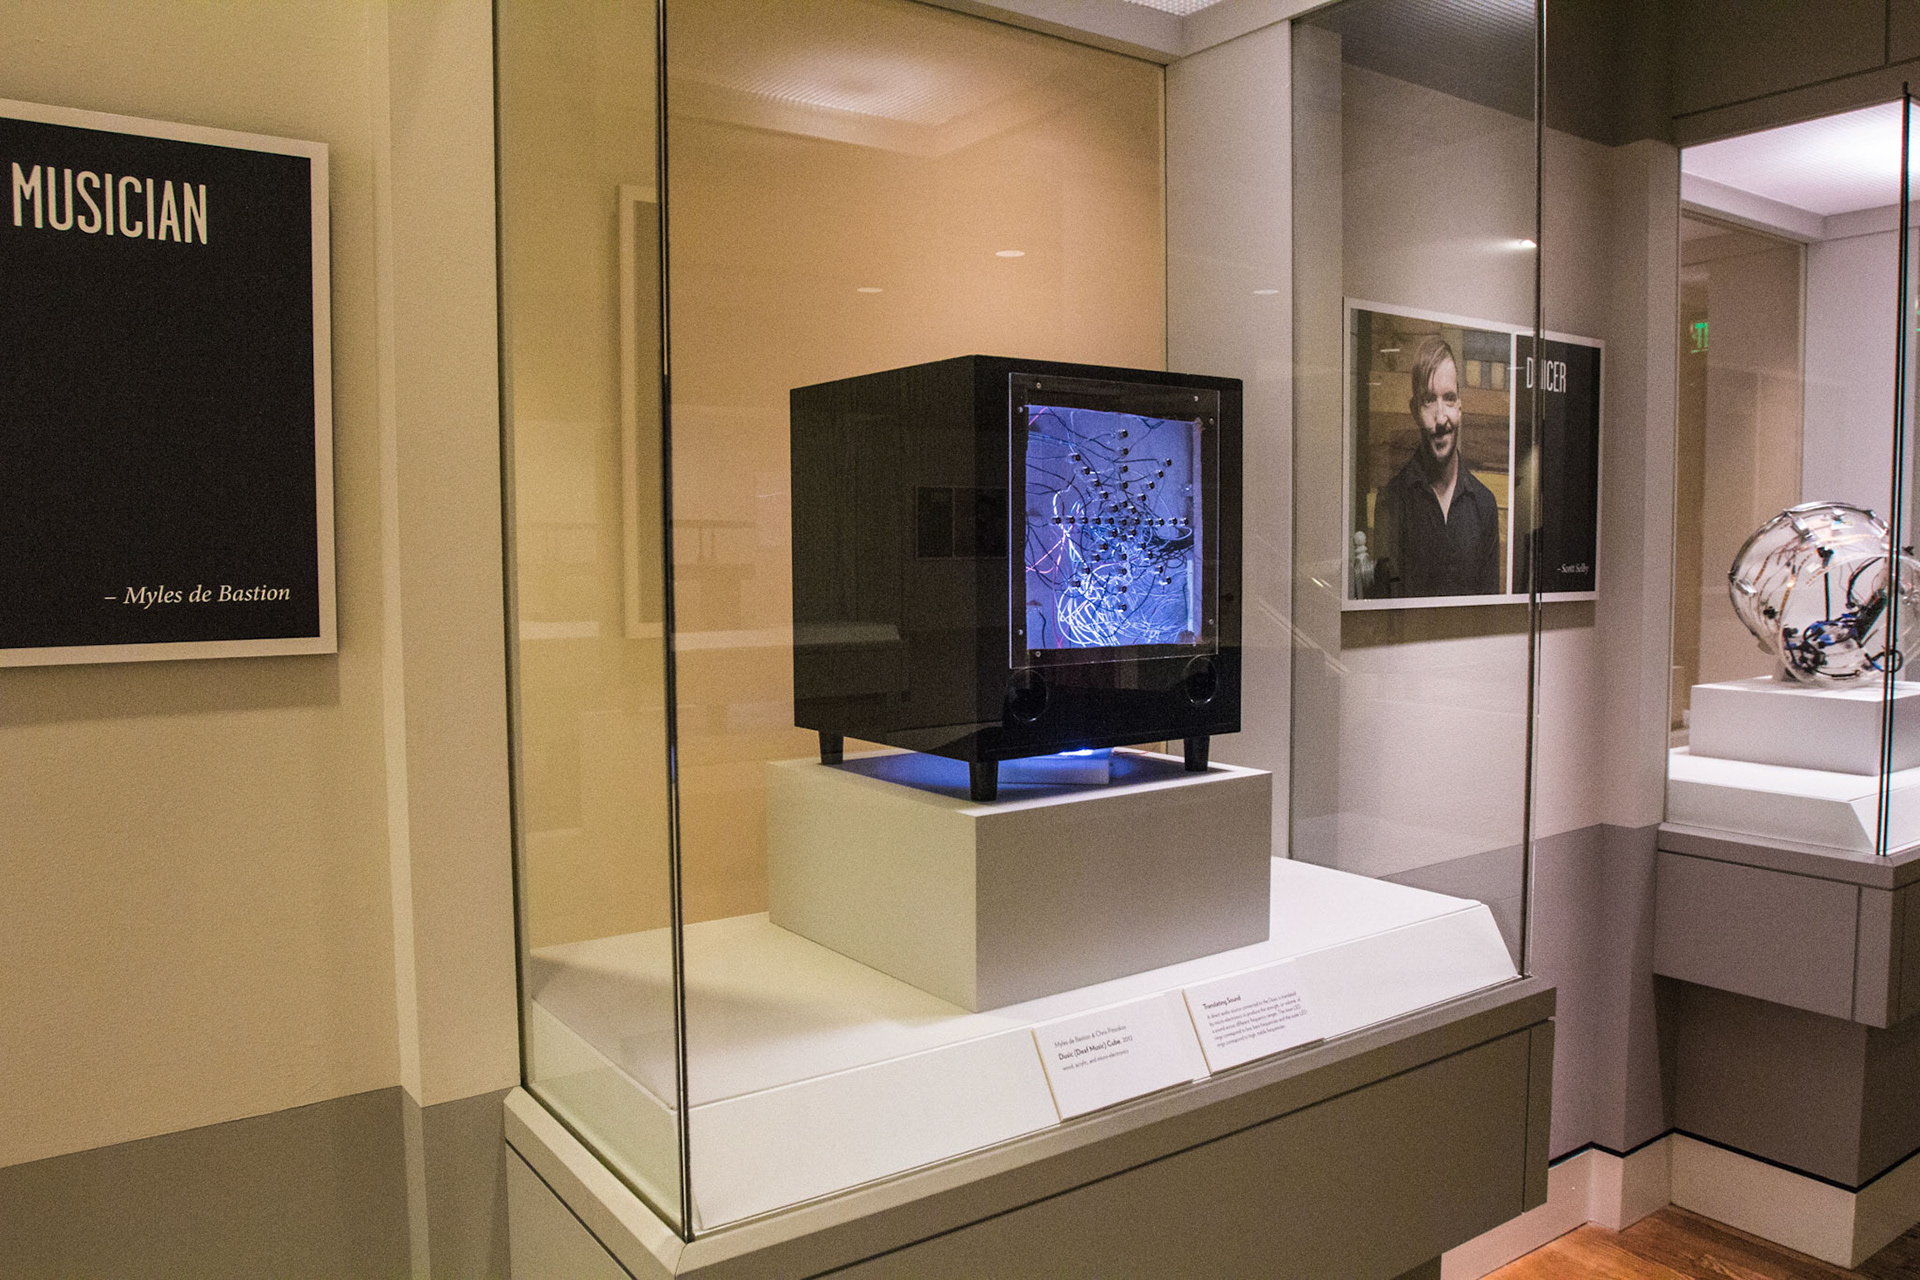 Electronic box with a screen inside a glass museum case.